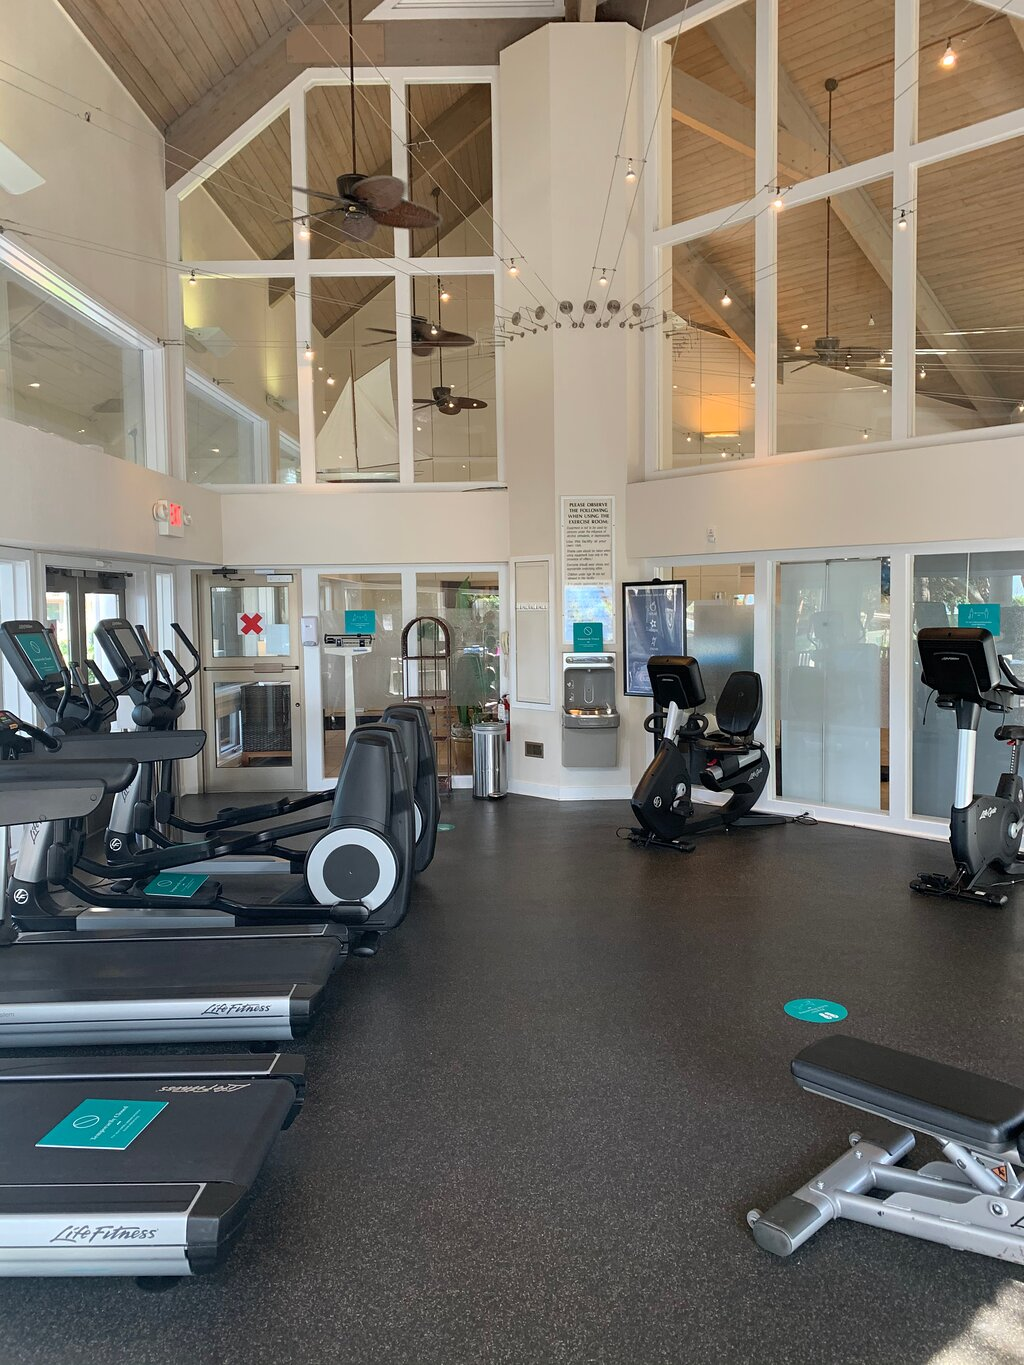 Marriott's Monarch at Sea Pines Fitness Center